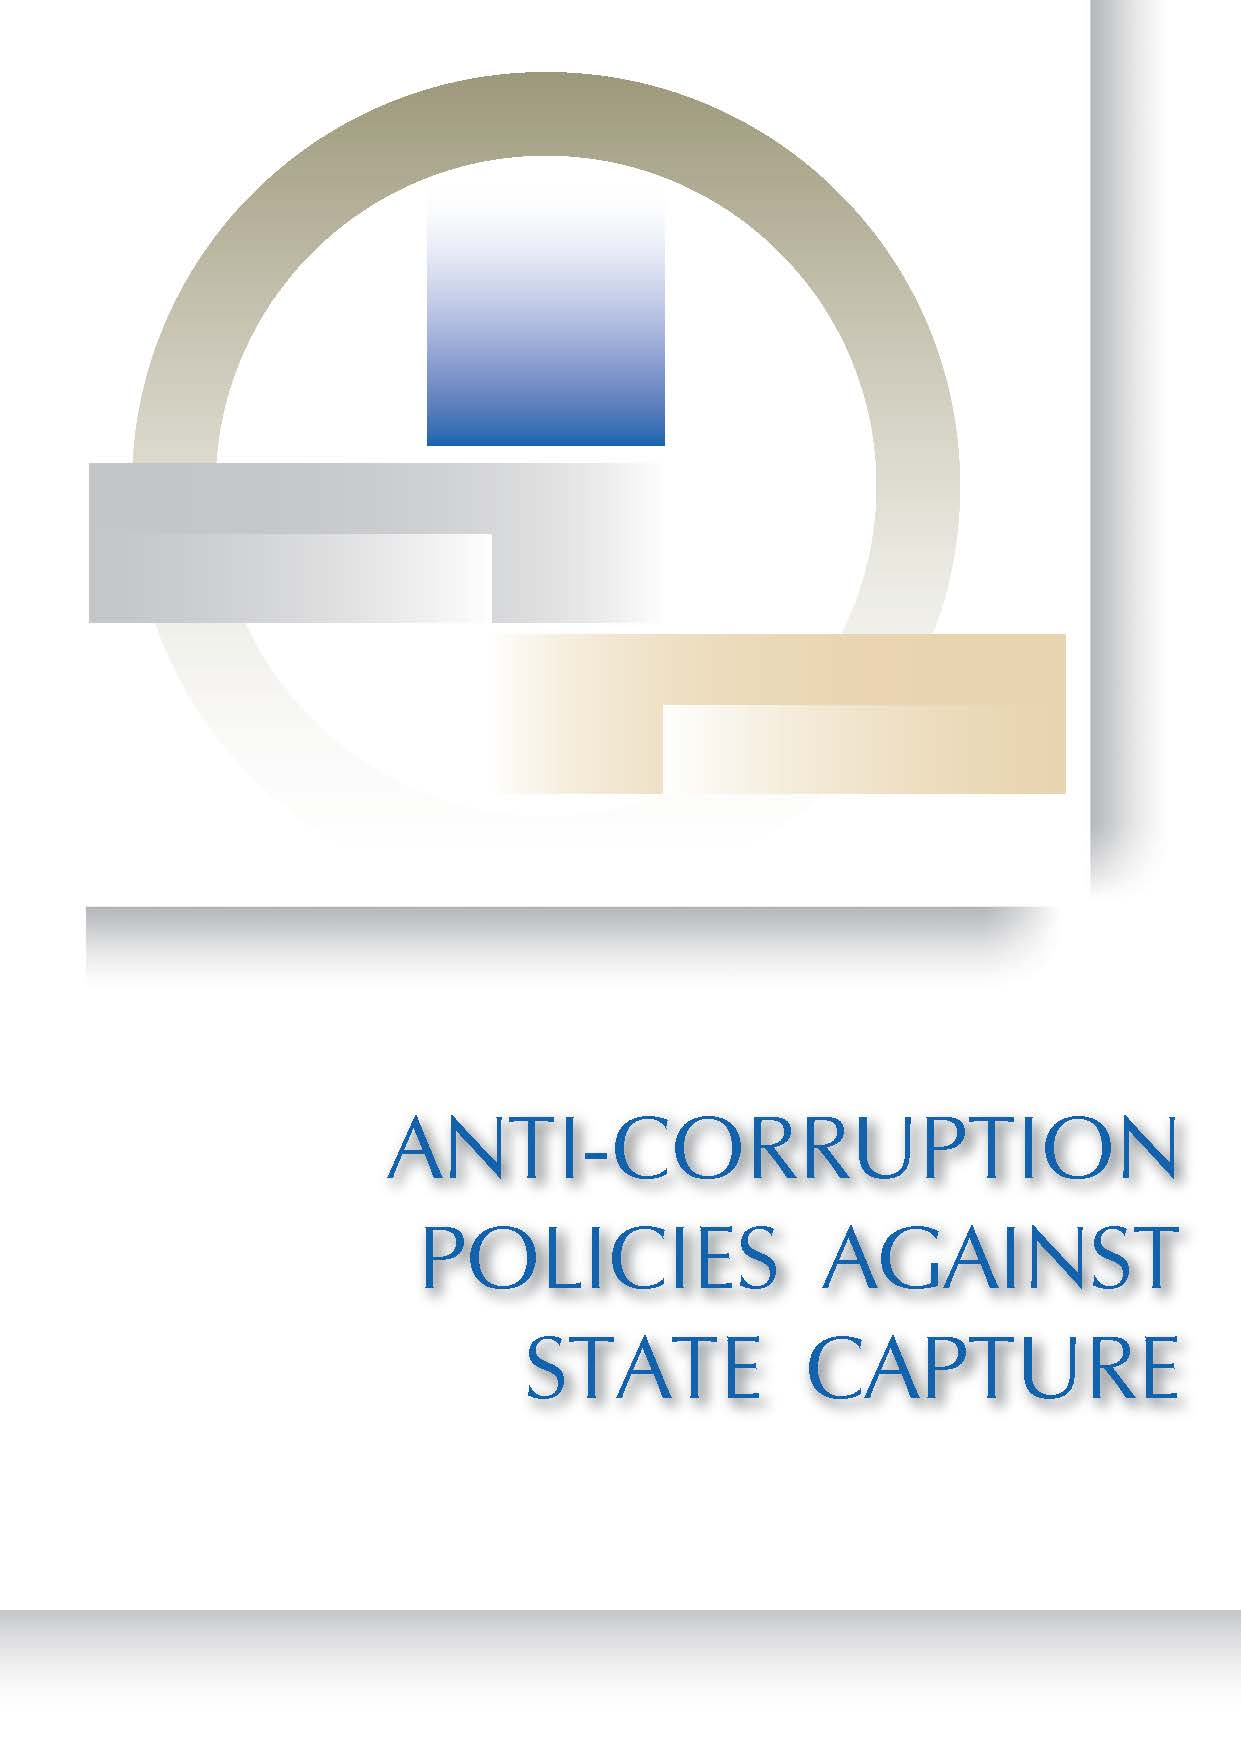 Anti-Corruption Policies against State Capture